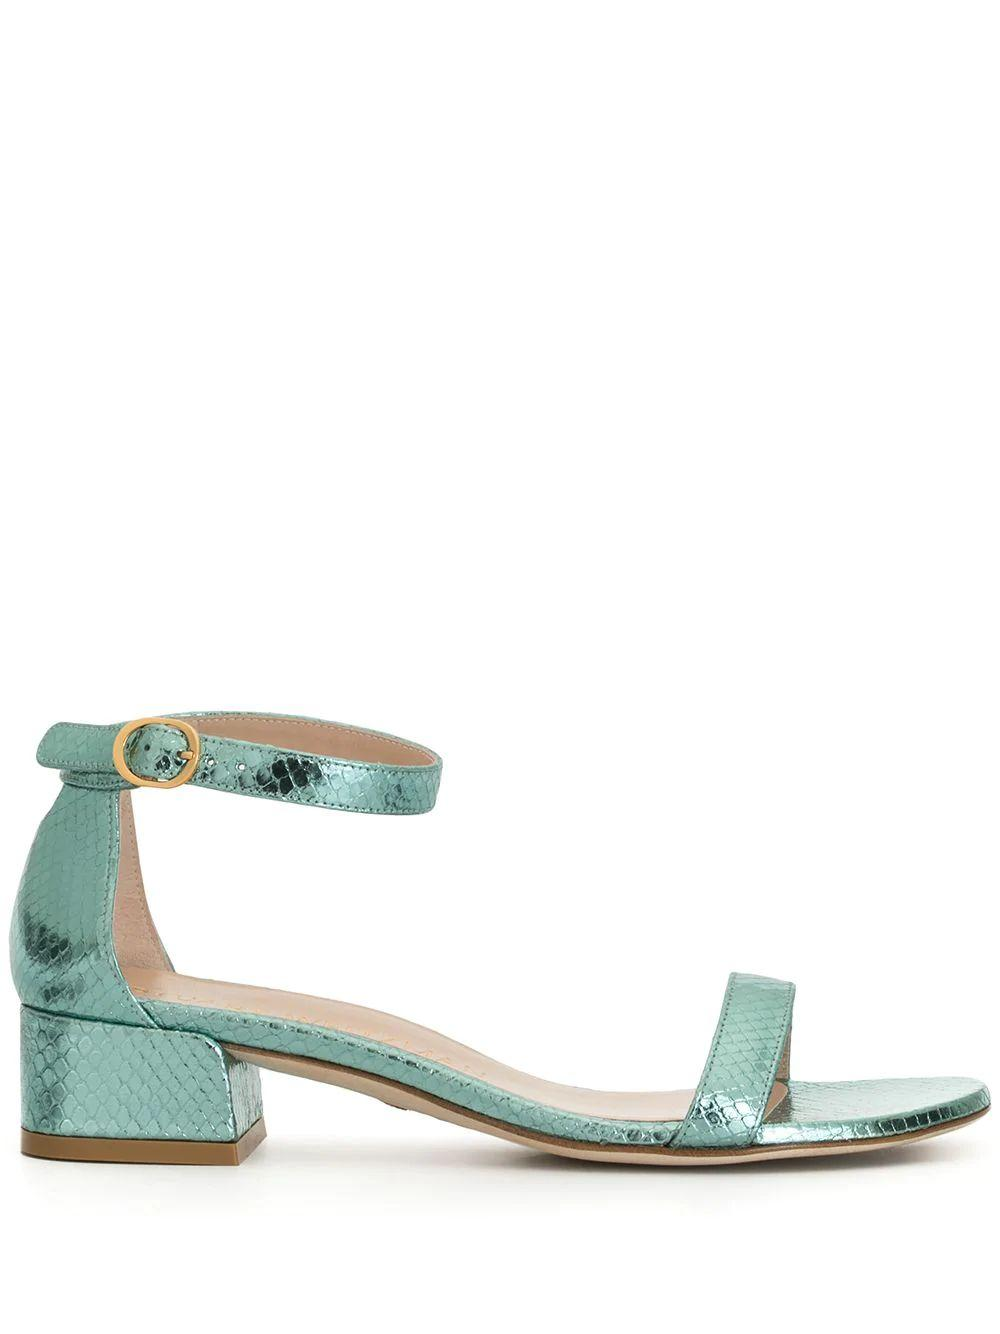 Nudist June Snake Print Block Heel Sandal